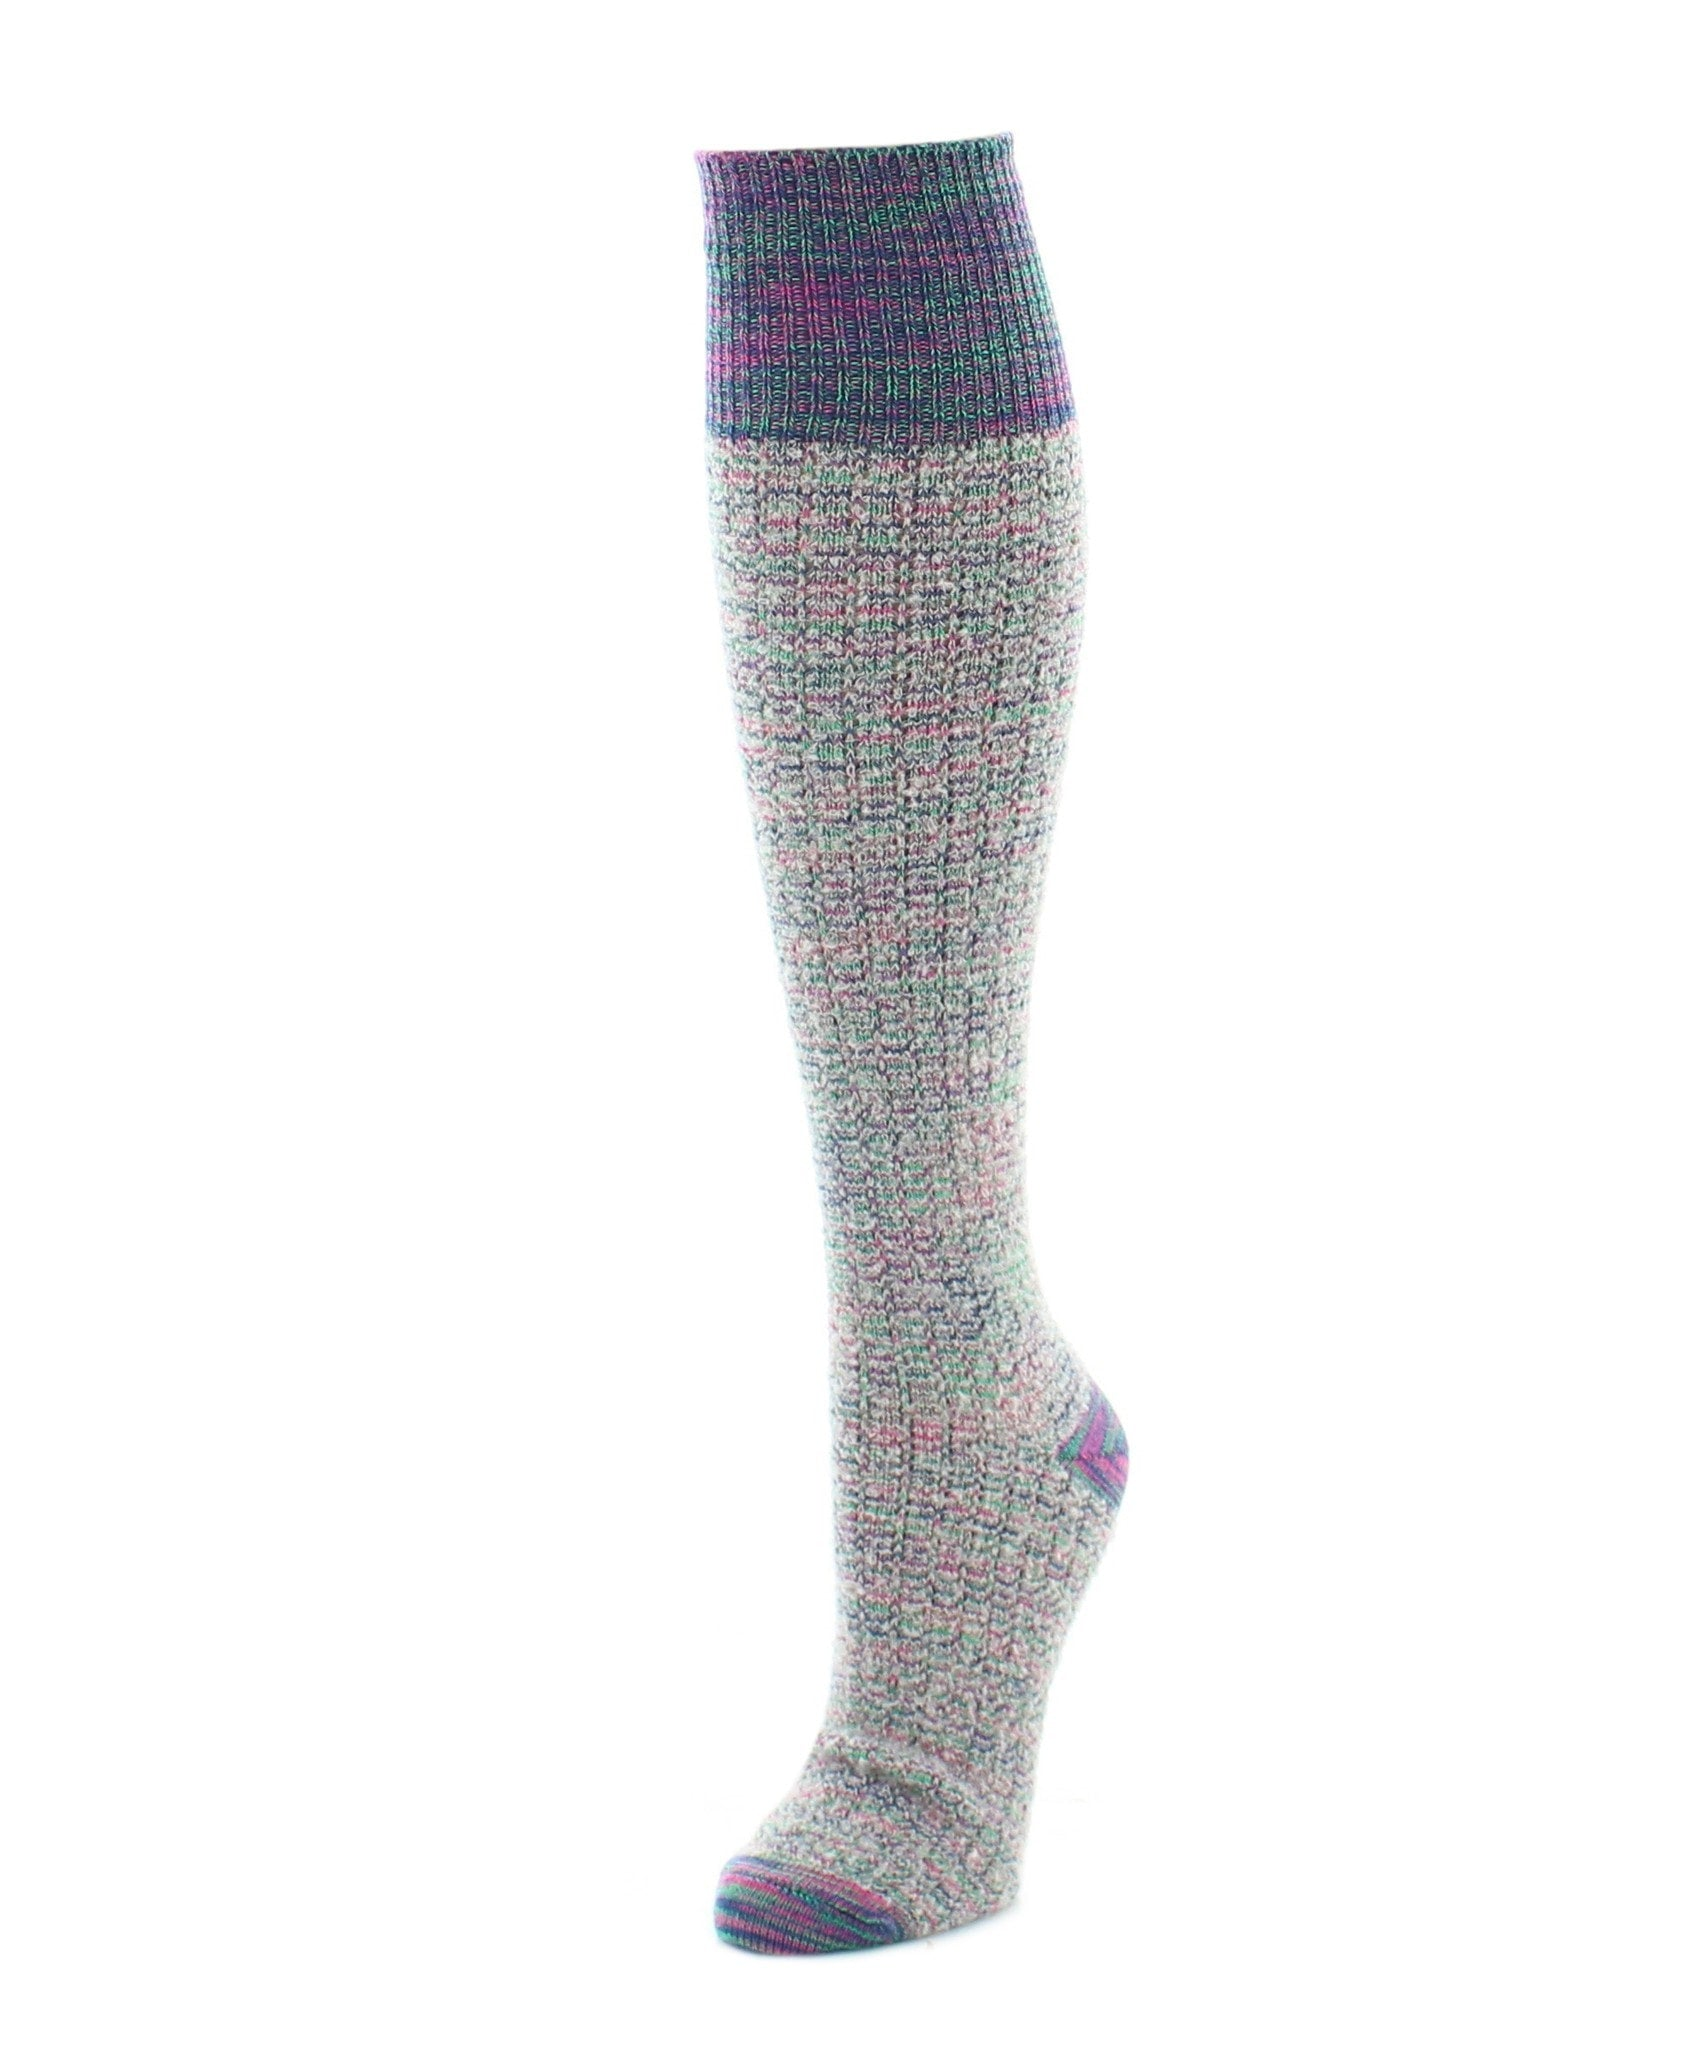 Fuzzy Mixed Threads Knee High Women's Socks